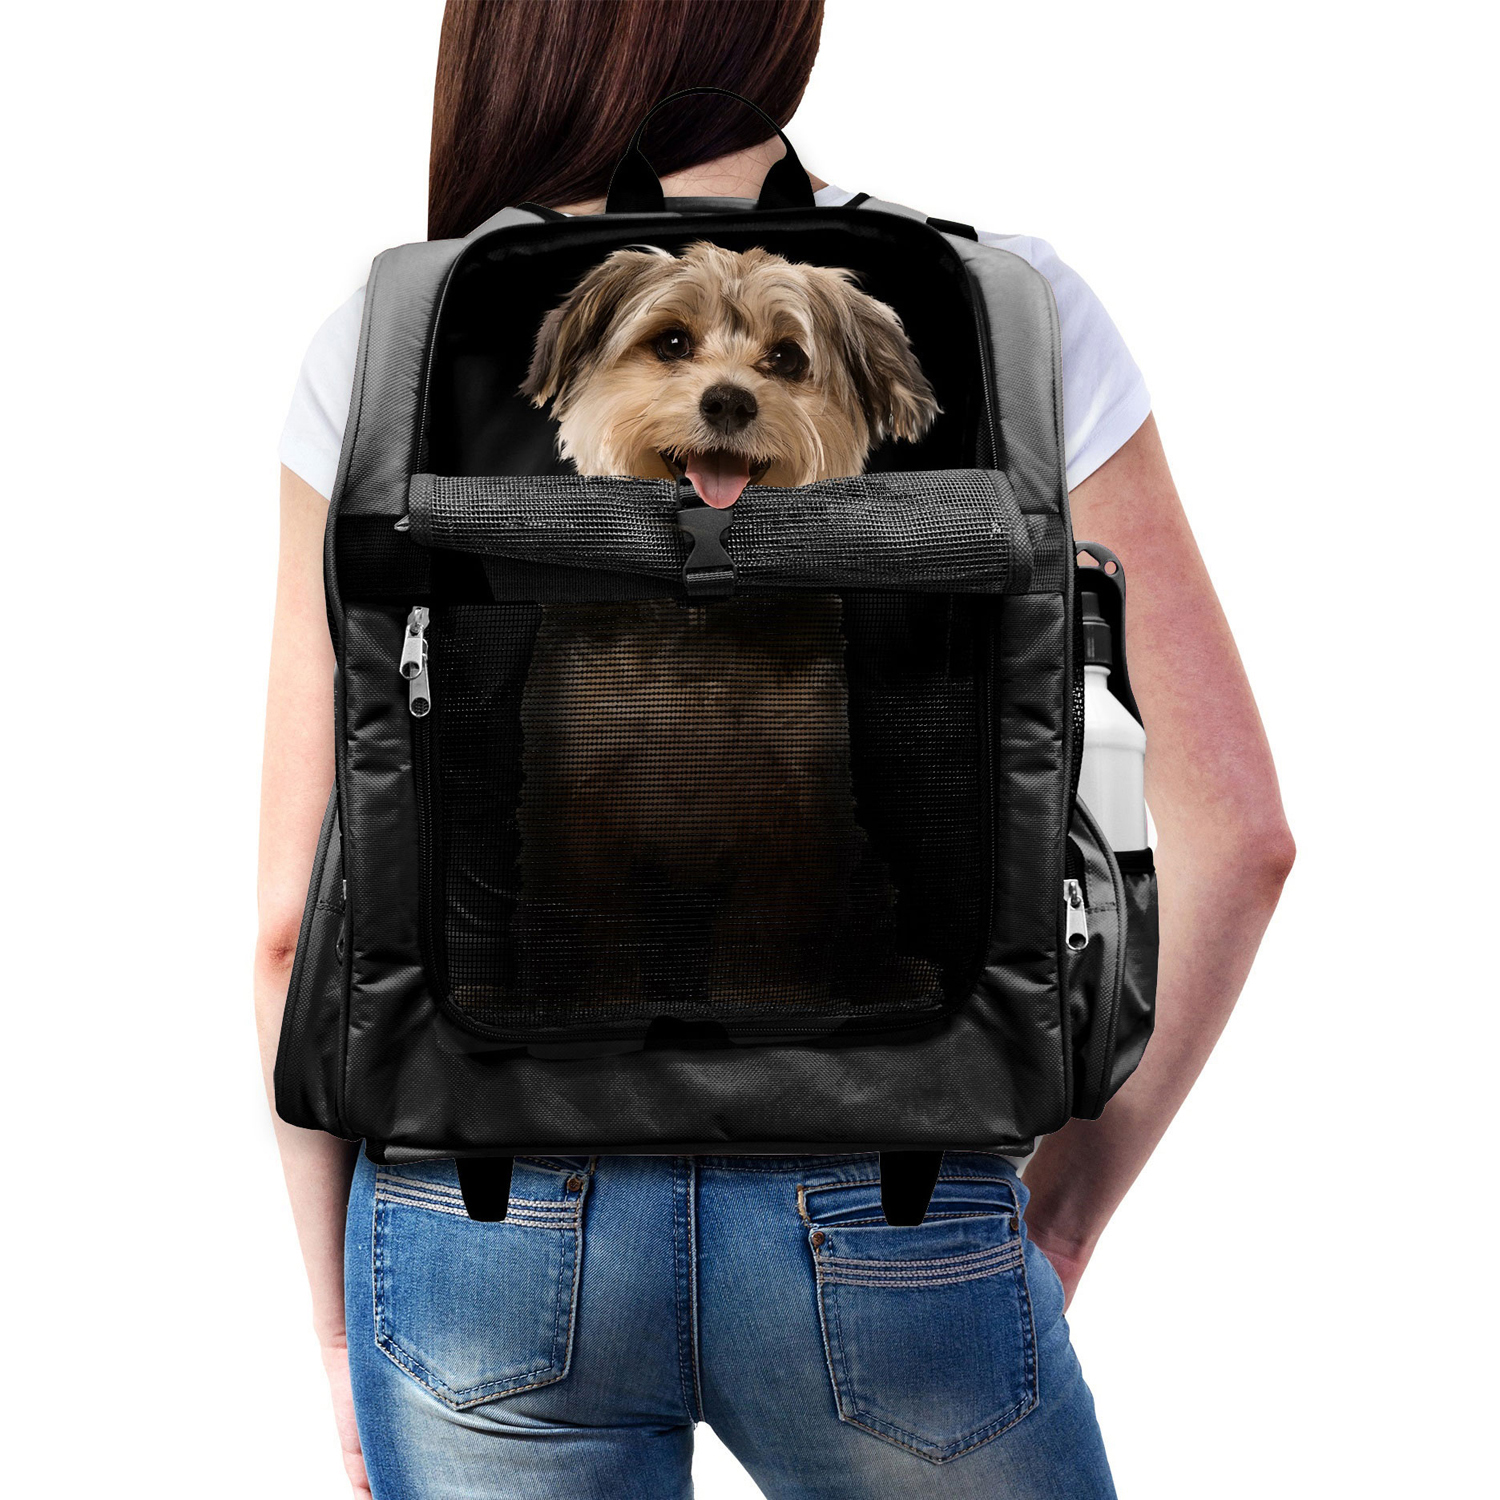 Pet Roller Backpack Carrier with Water Bottle in Black